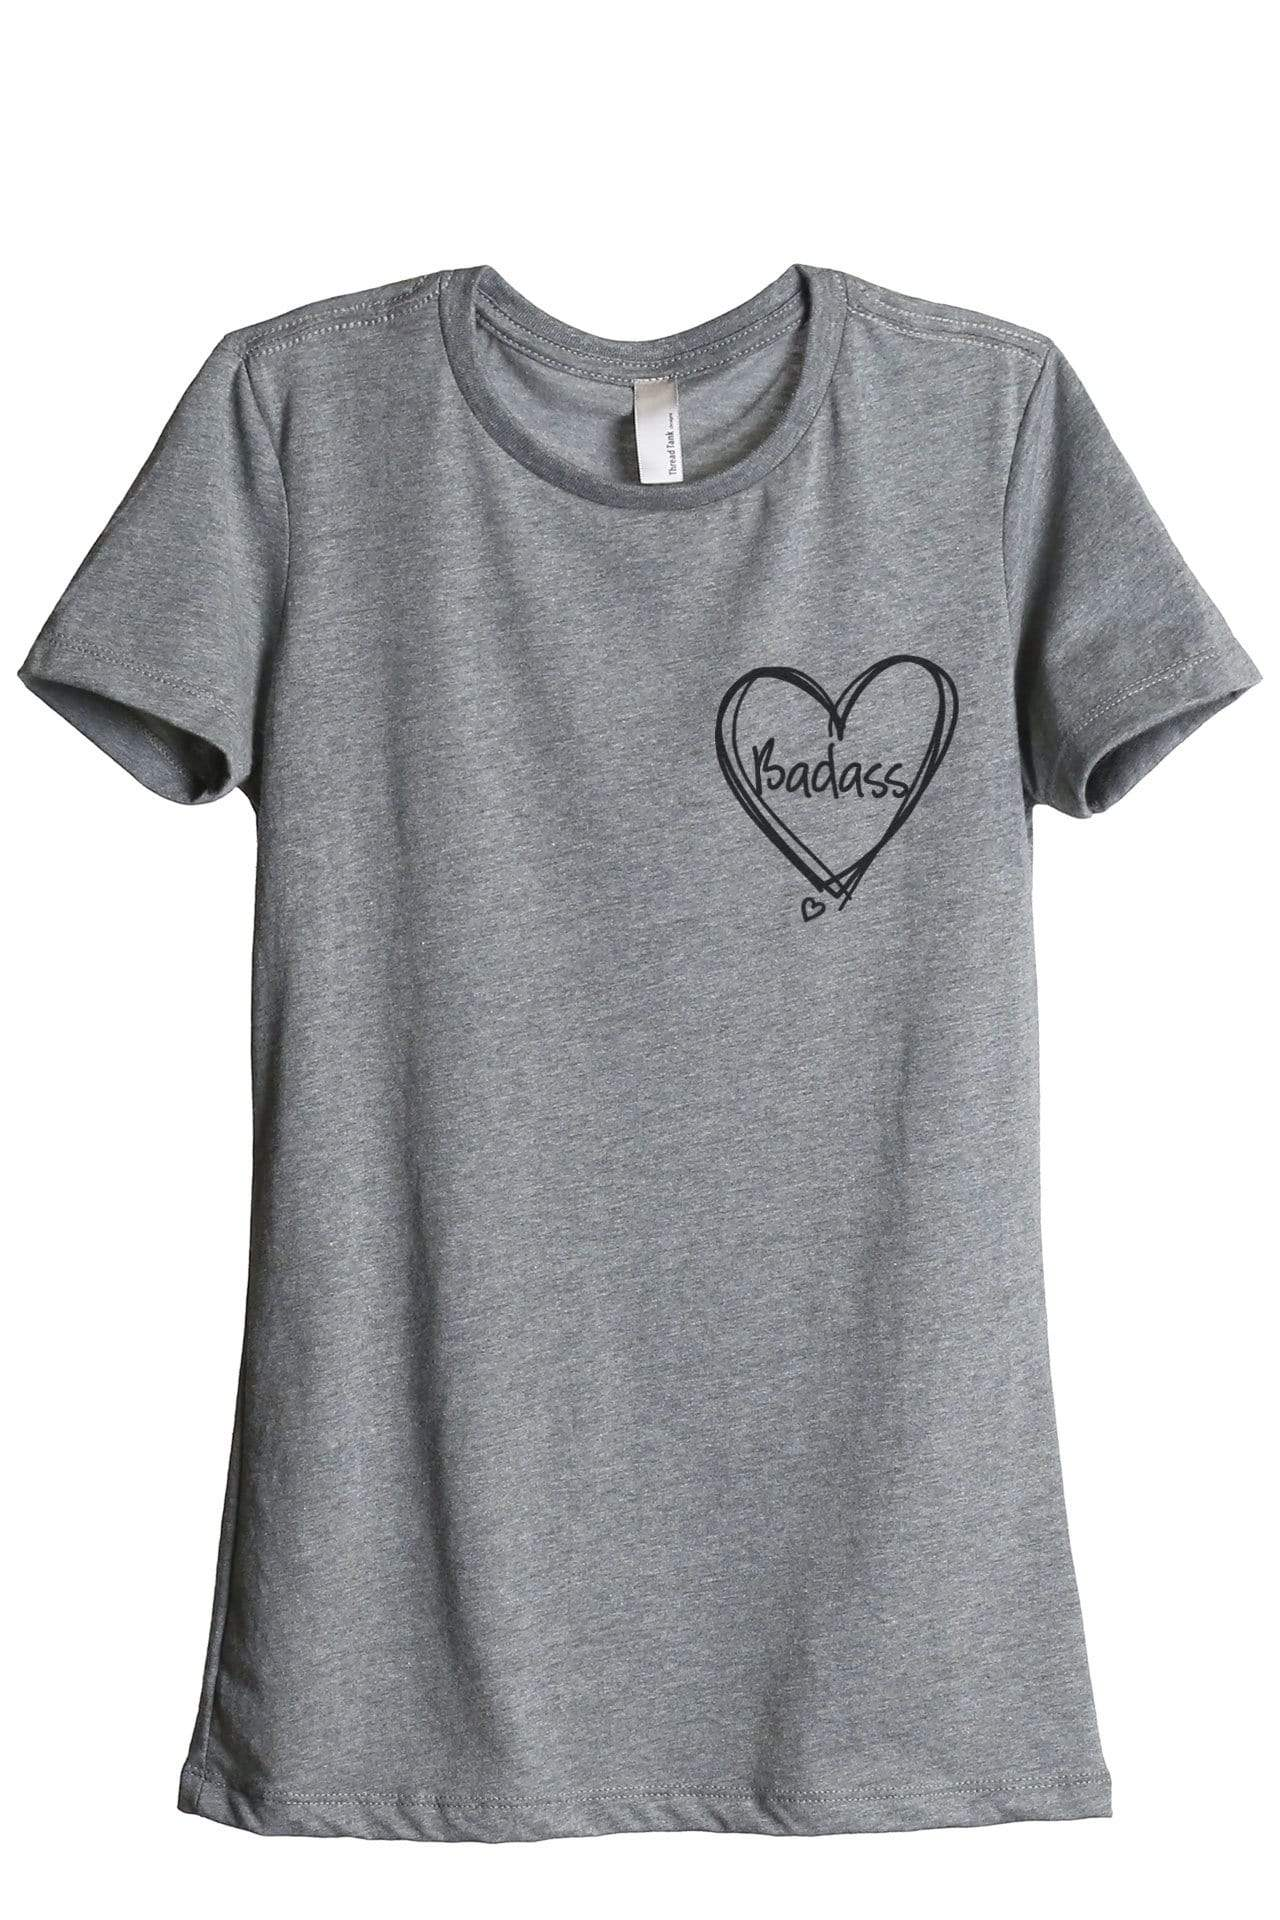 Badass Heart - Thread Tank | Stories You Can Wear | T-Shirts, Tank Tops and Sweatshirts